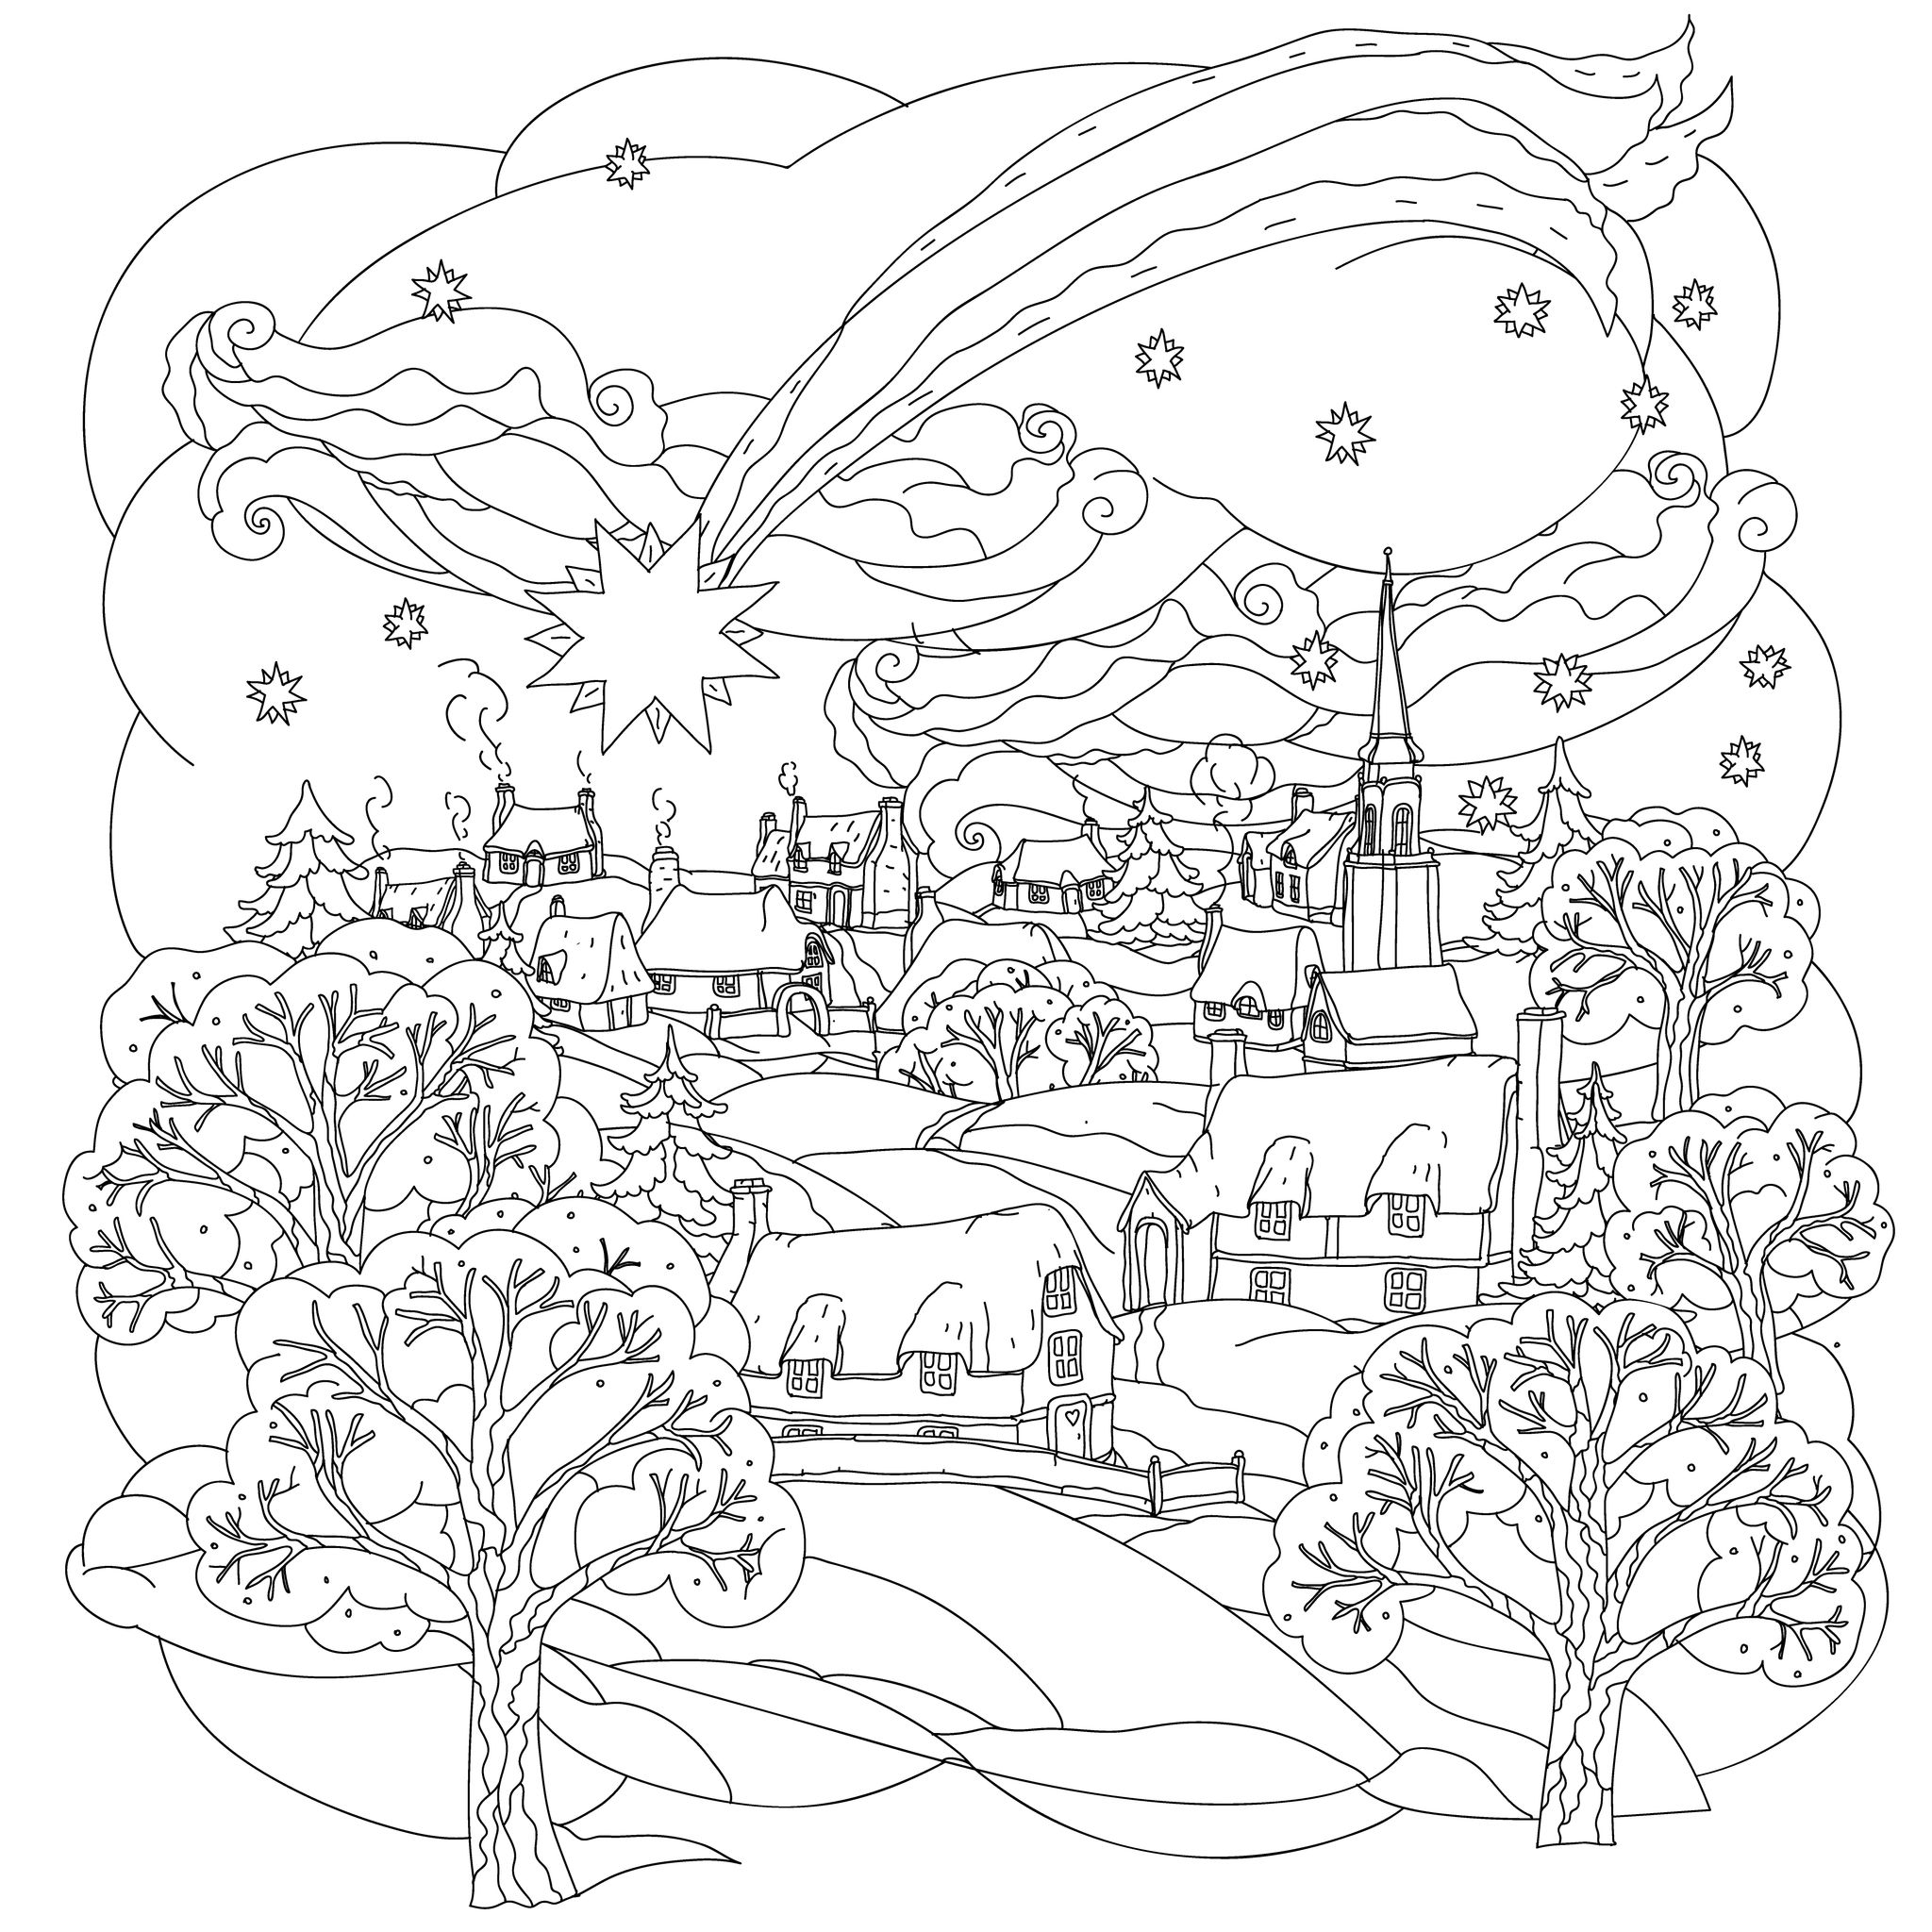 winter adult coloring pages Little town in winter   Christmas Adult Coloring Pages winter adult coloring pages